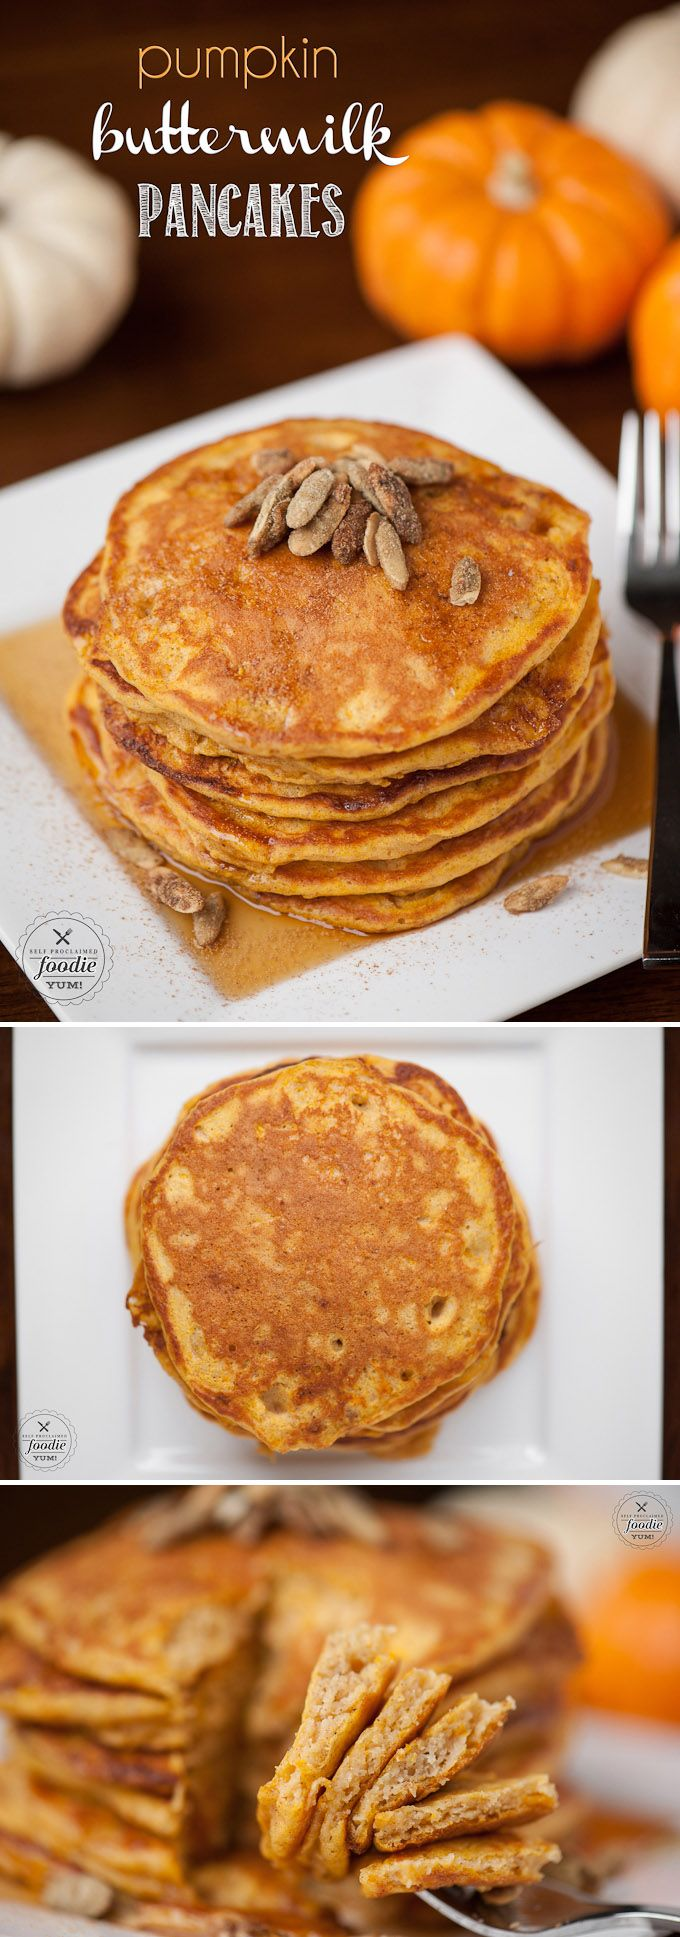 This fall, your family will love delicious and fluffy Pumpkin Buttermilk Pancakes for breakfast. They're really easy to make, so you'll love them too!